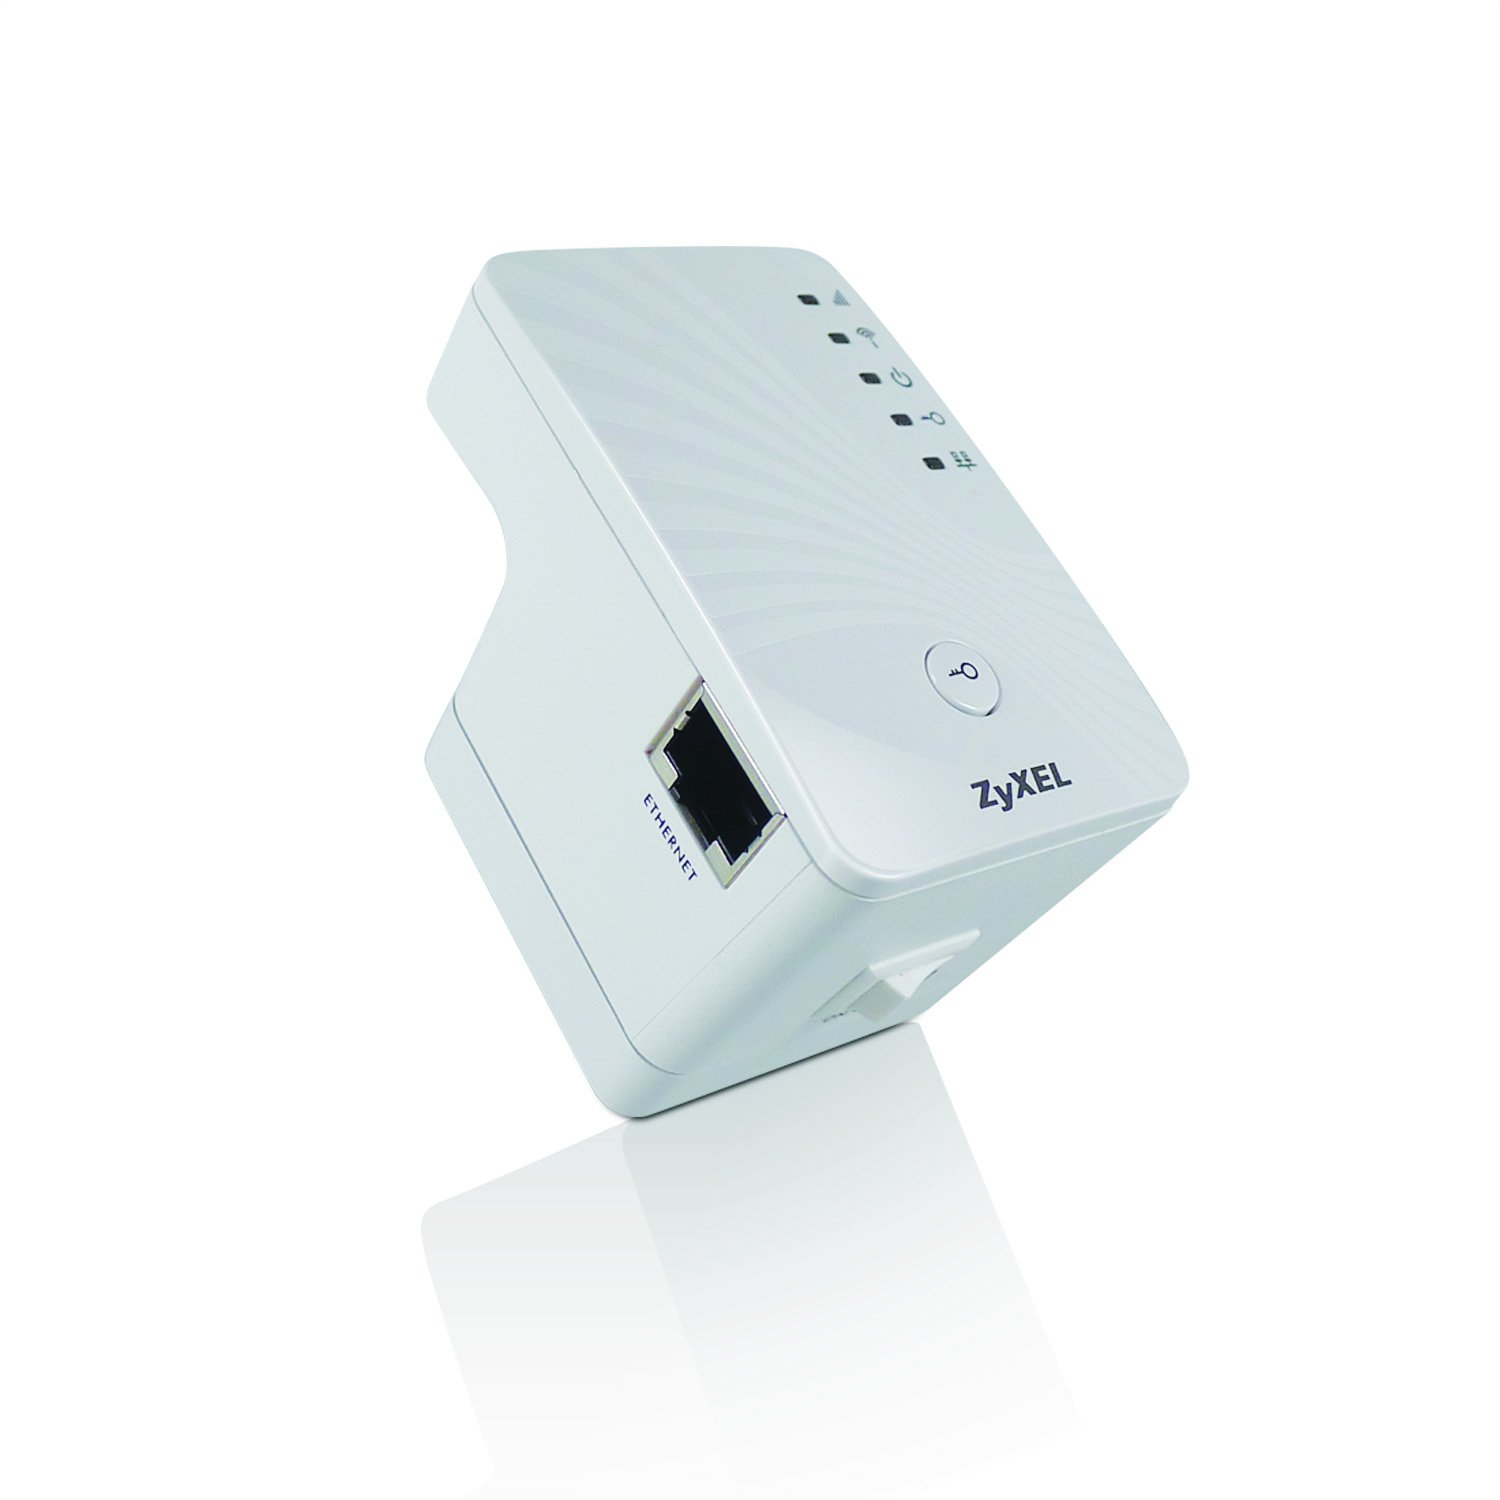 ZyXEL Wireless N Plug & Play 300Mbps Range Extender (WRE2205 Version 2) by ZyXEL